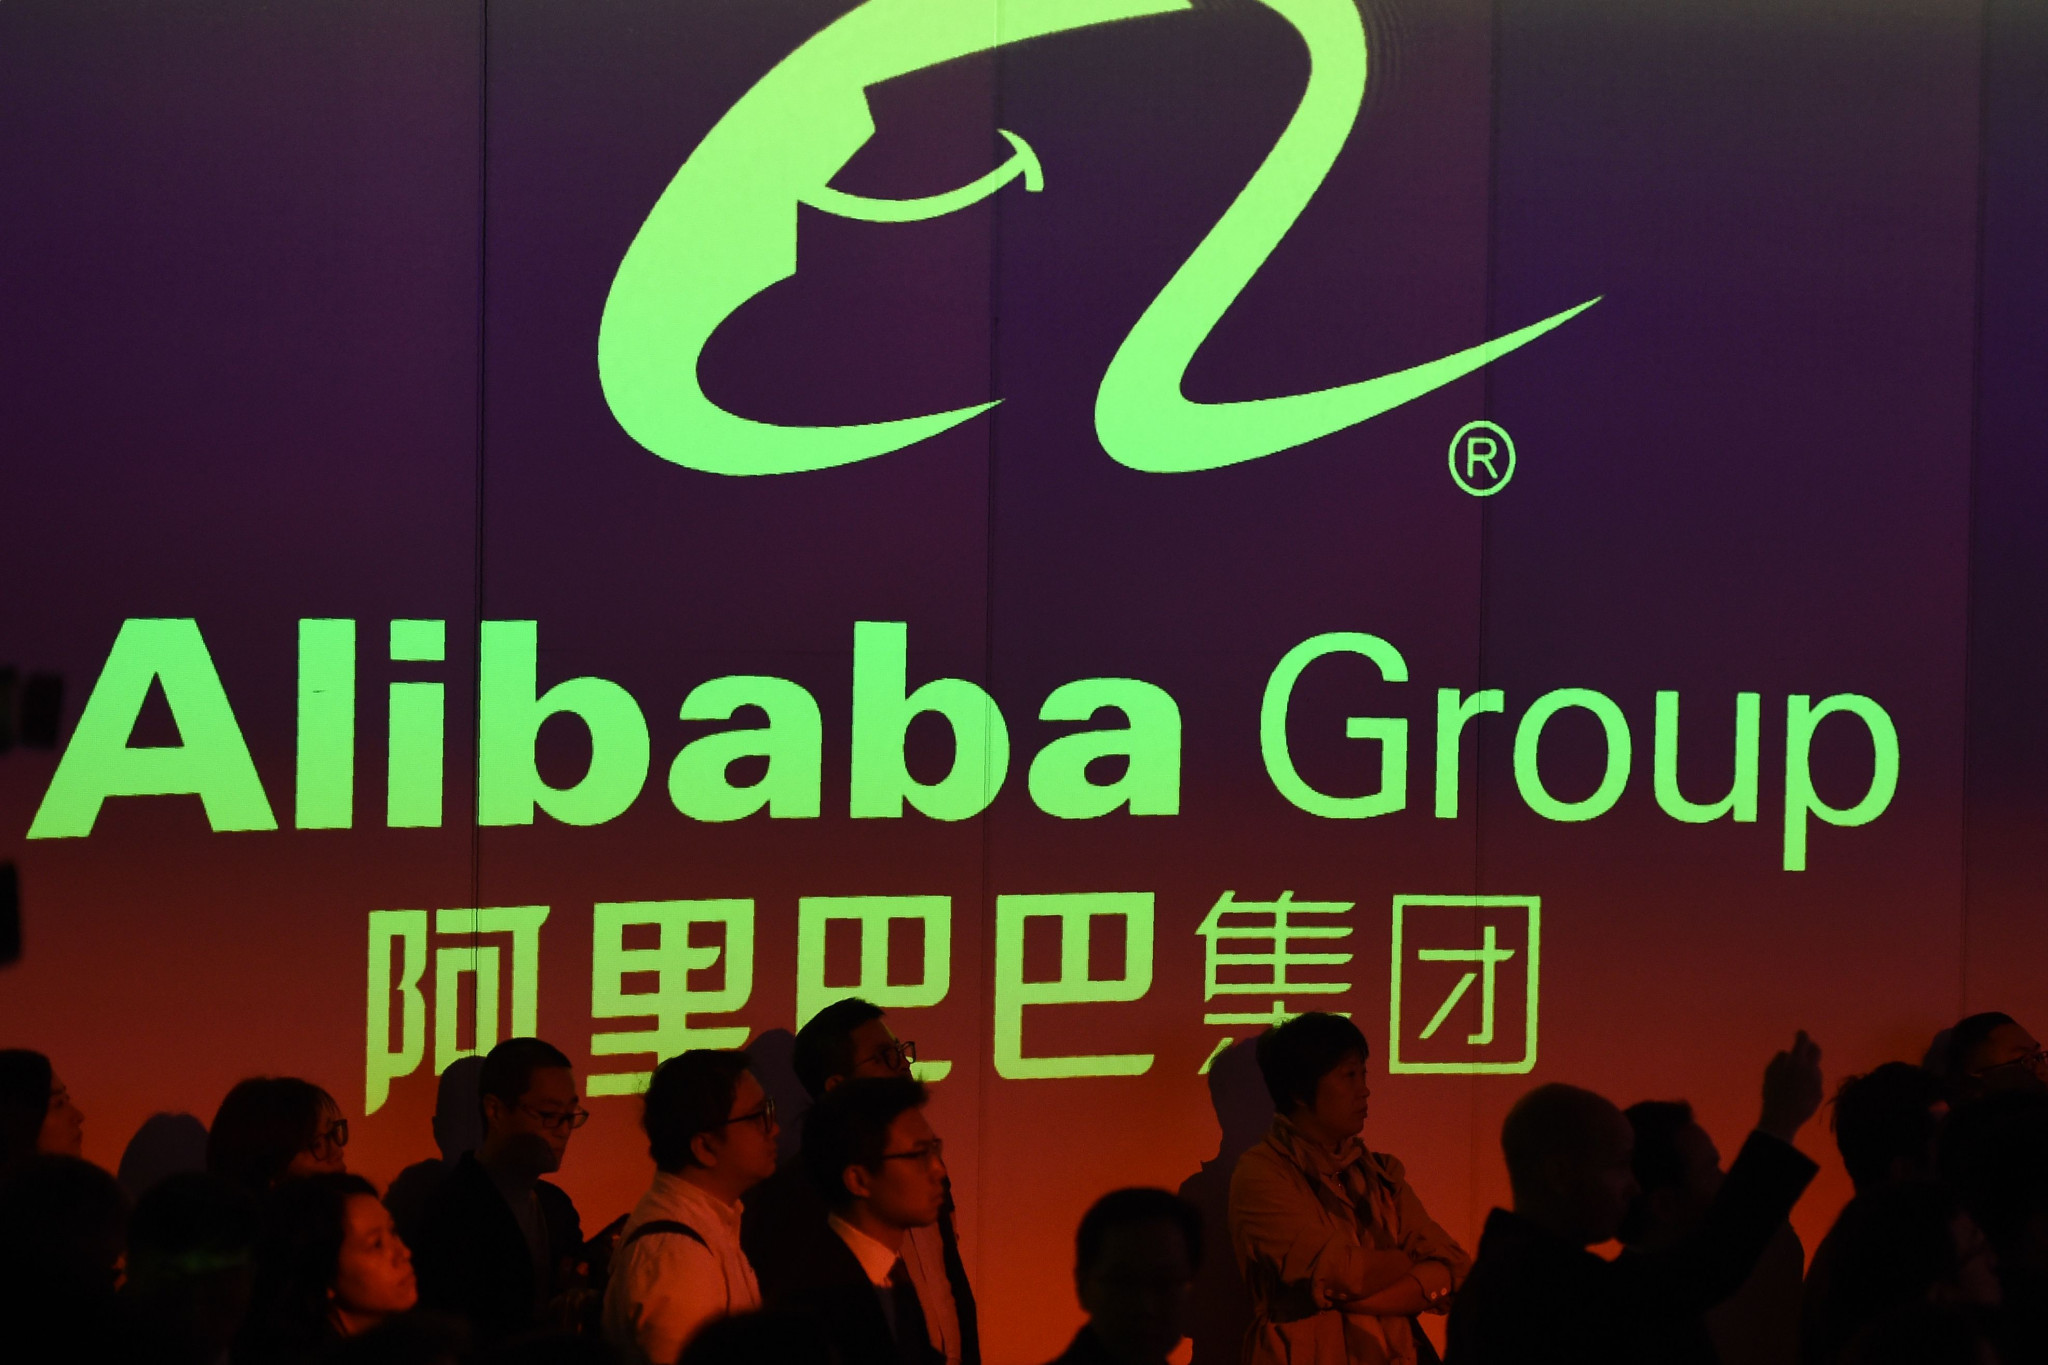 TOP sponsor Alibaba forecasts 27 per cent revenue growth in current year